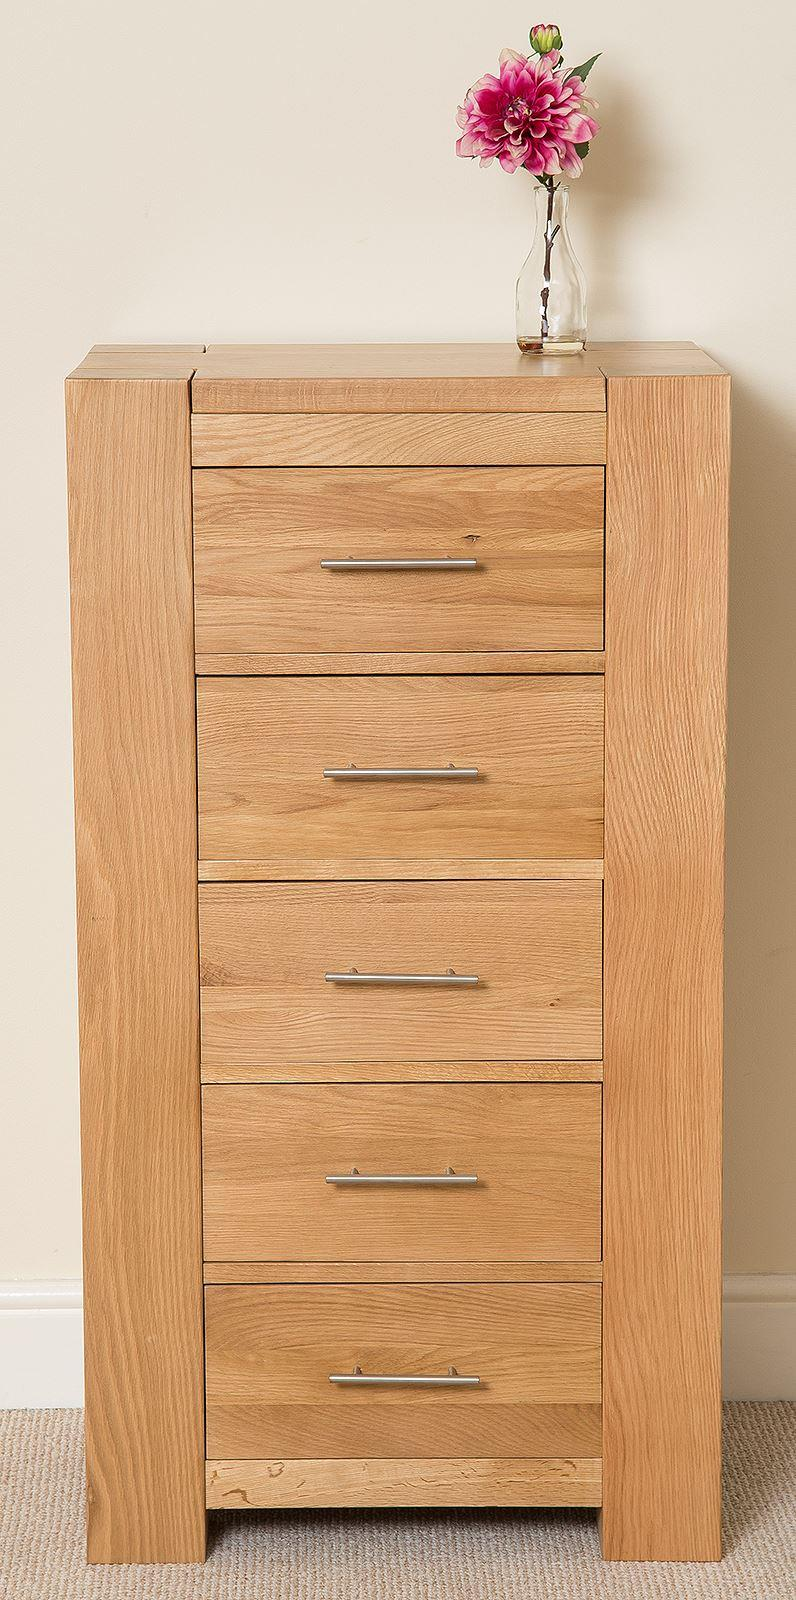 Kuba Solid Oak 5 Drawer Tallboy Chest